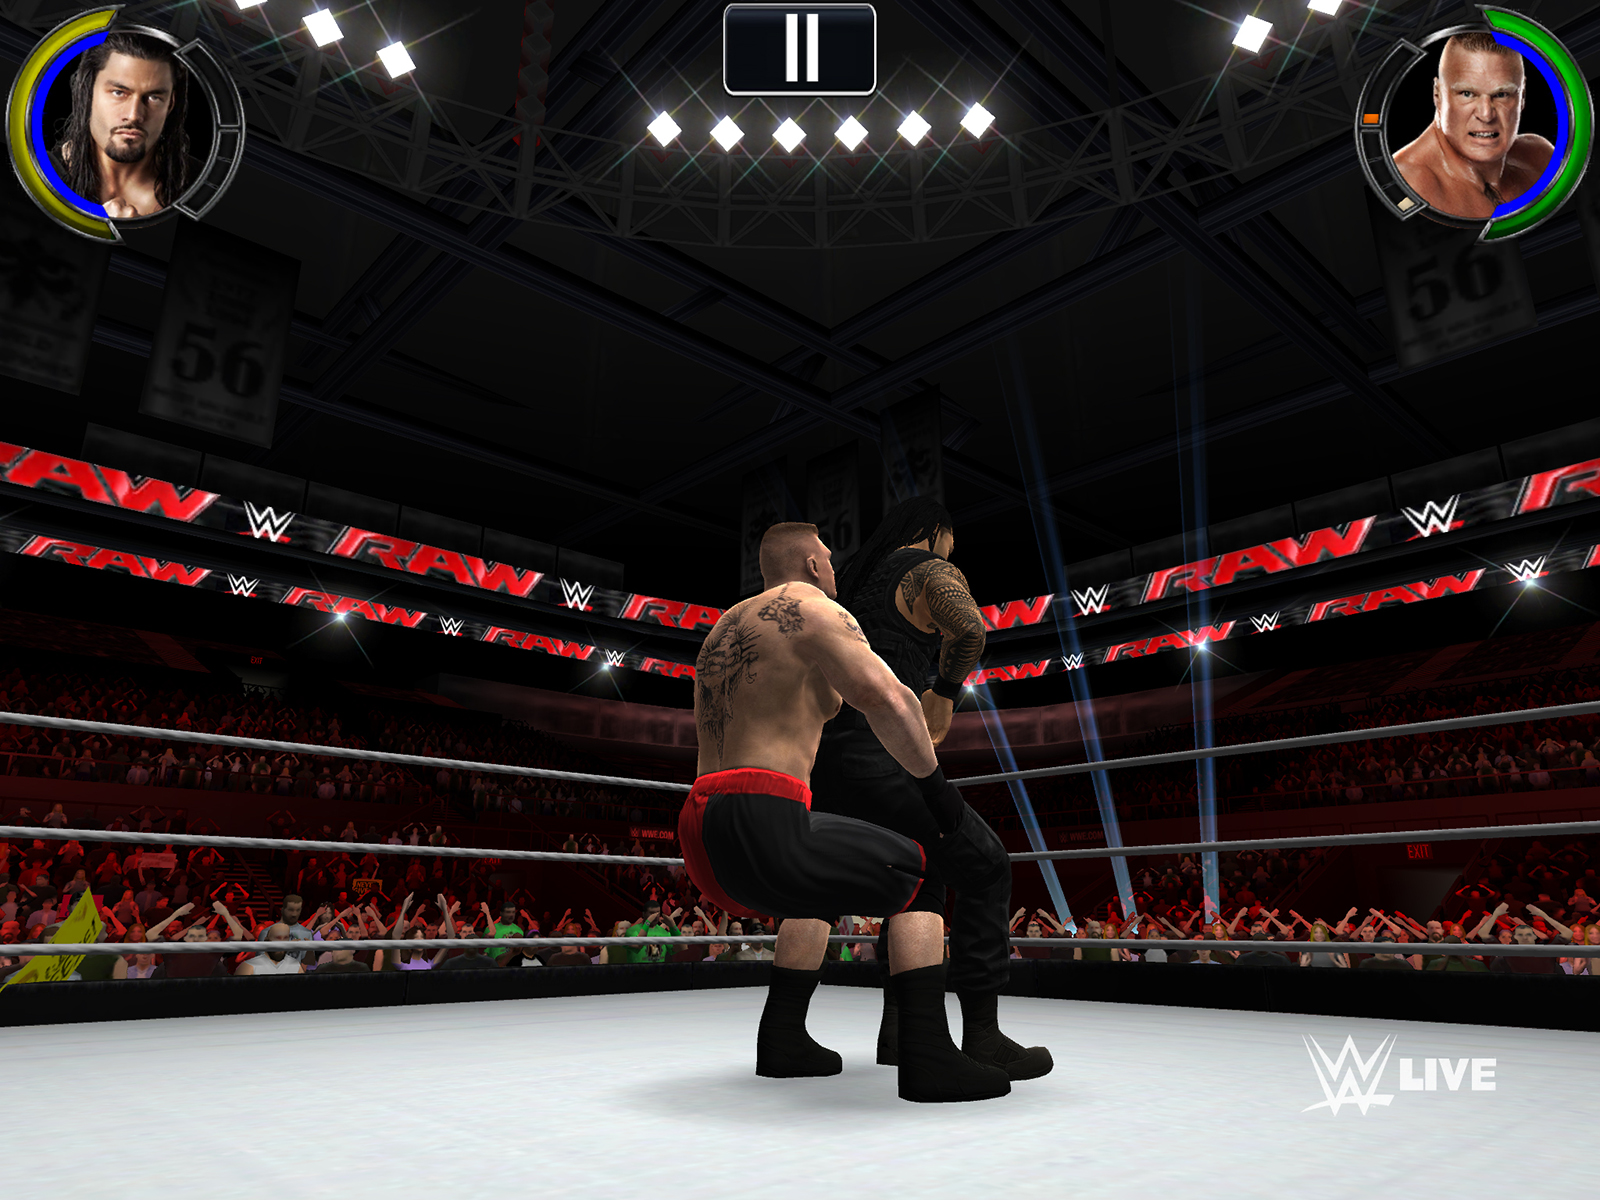 Wrestling Android Games Room